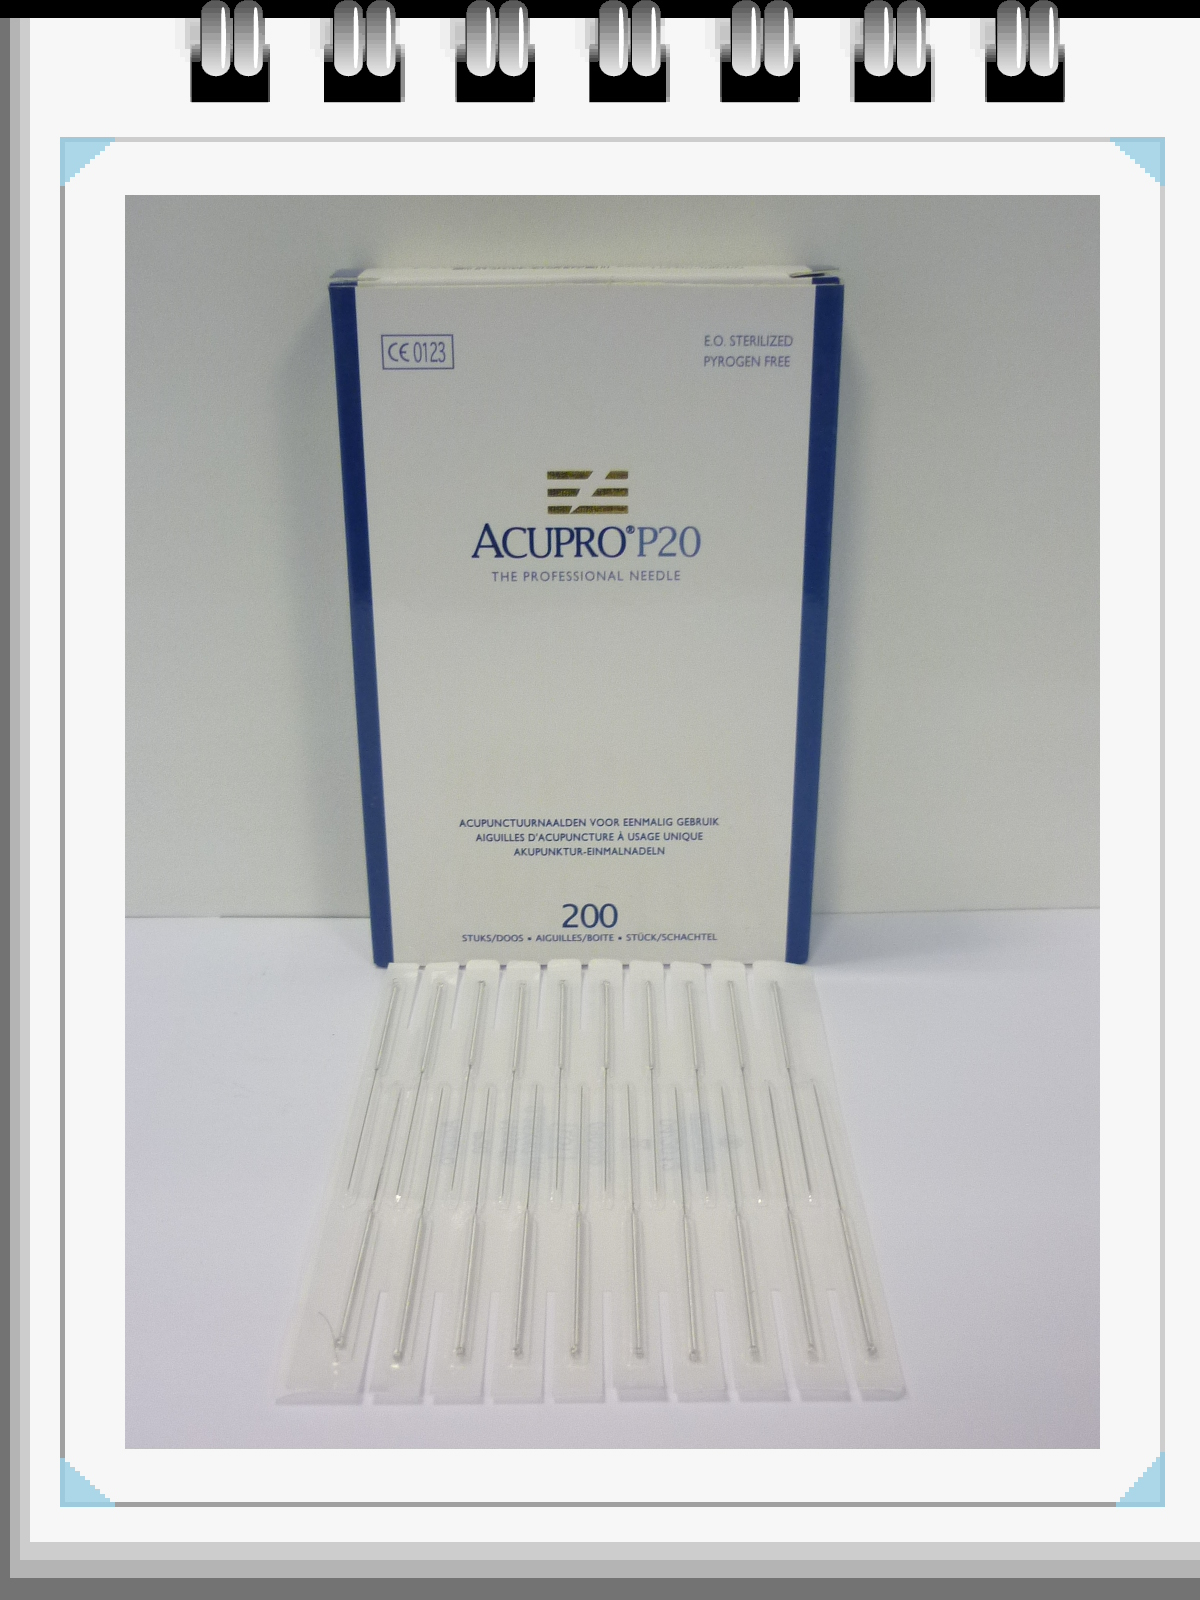 All Products - Acupunctuurnaalden: 0,25 x 40mm, p--200